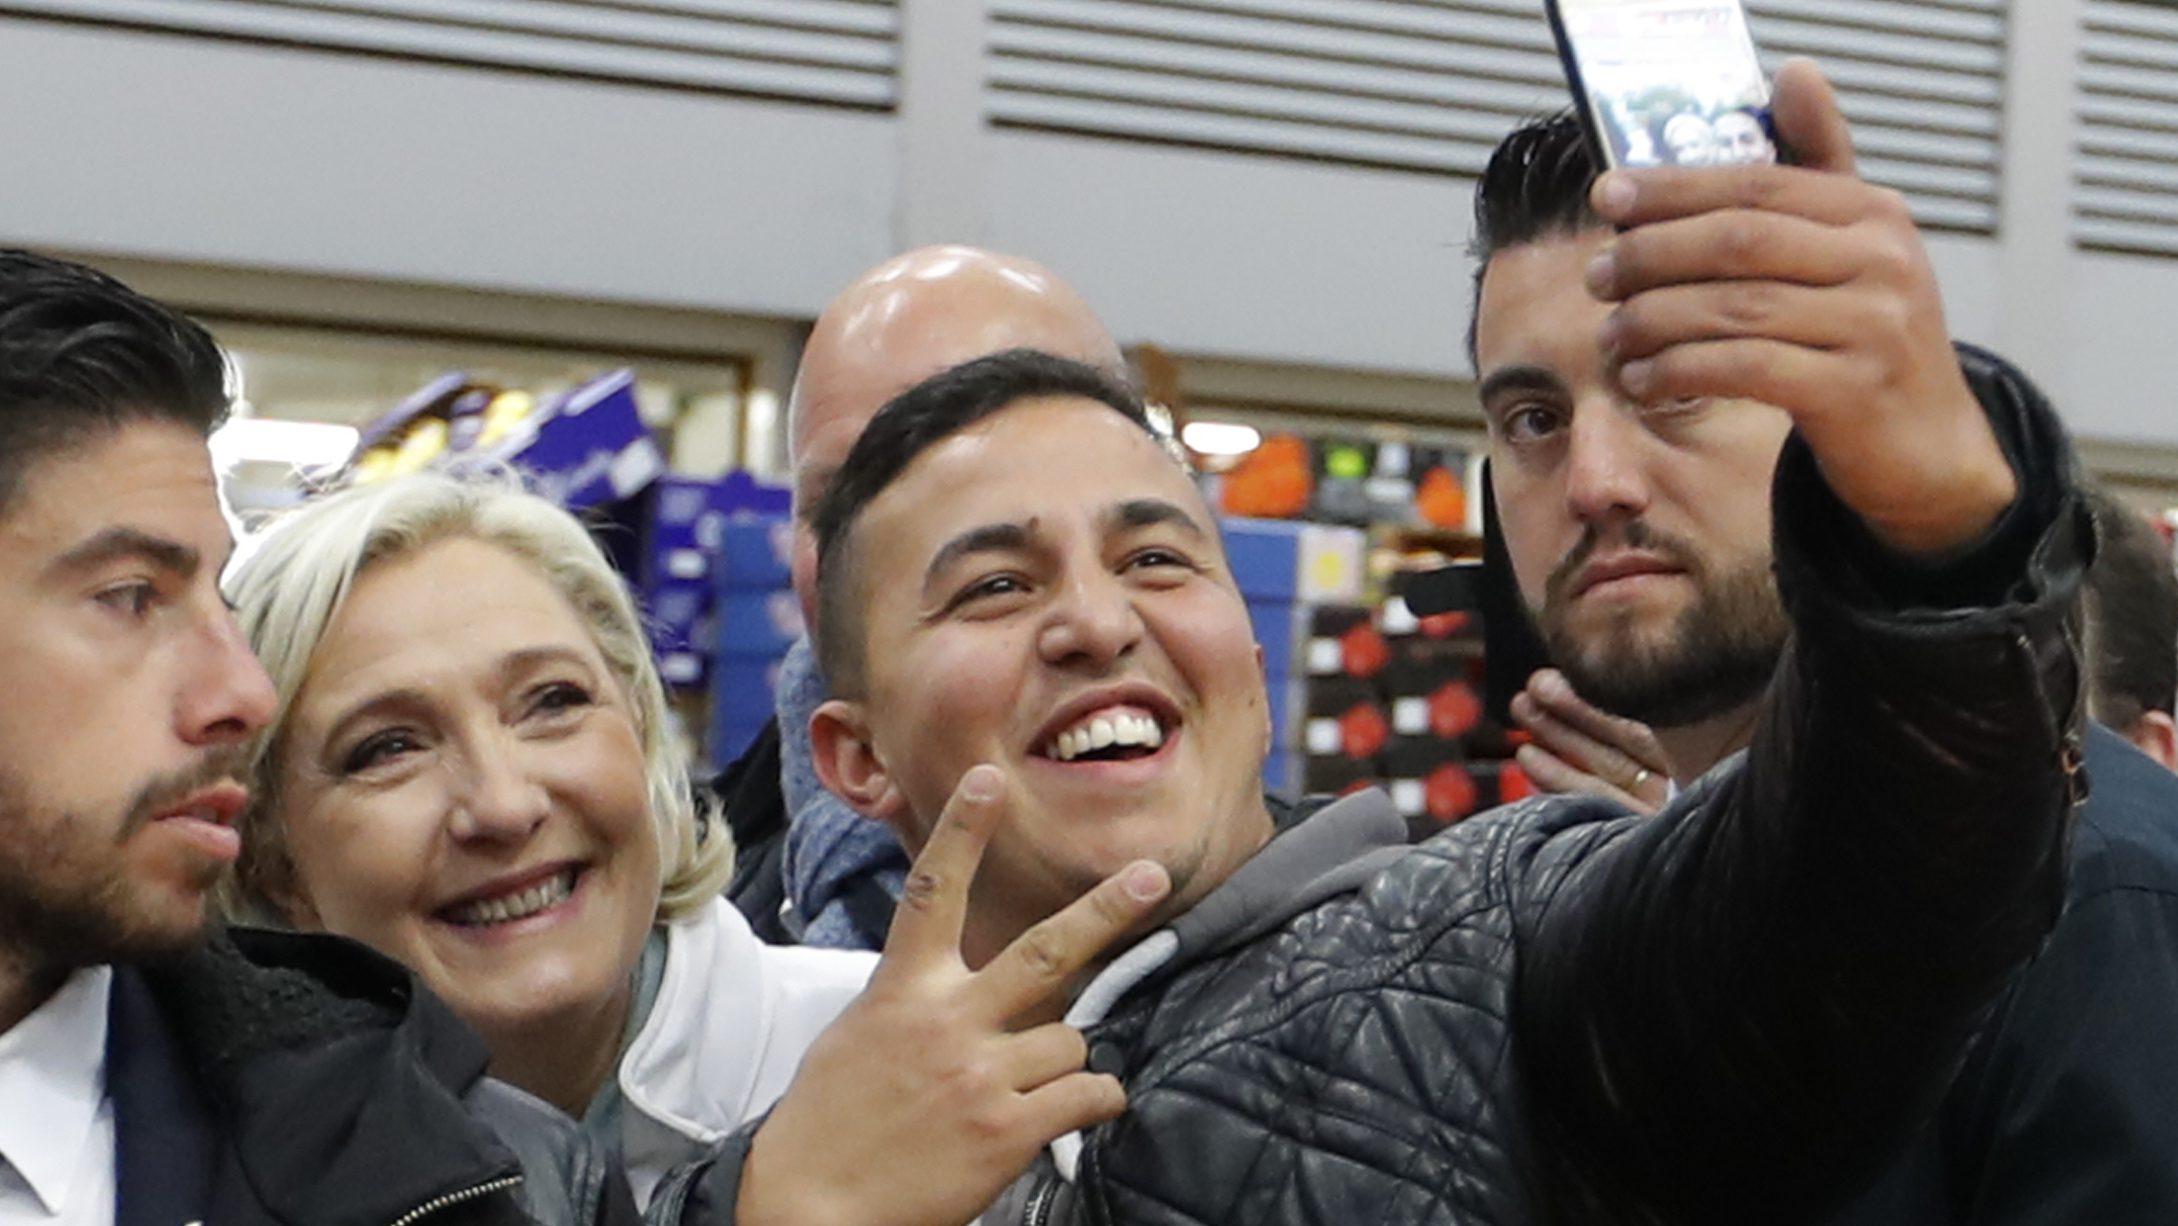 epa05926483 Marine Le Pen (2-L), French National Front (FN) political party candidate for French 2017 presidential election, poses for a selfie with an employee as she visits the Rungis international food market, near Paris, during her campaign, France, April 25, 2017.  EPA/CHARLES PLATIAU / POOL MAXPPP OUT